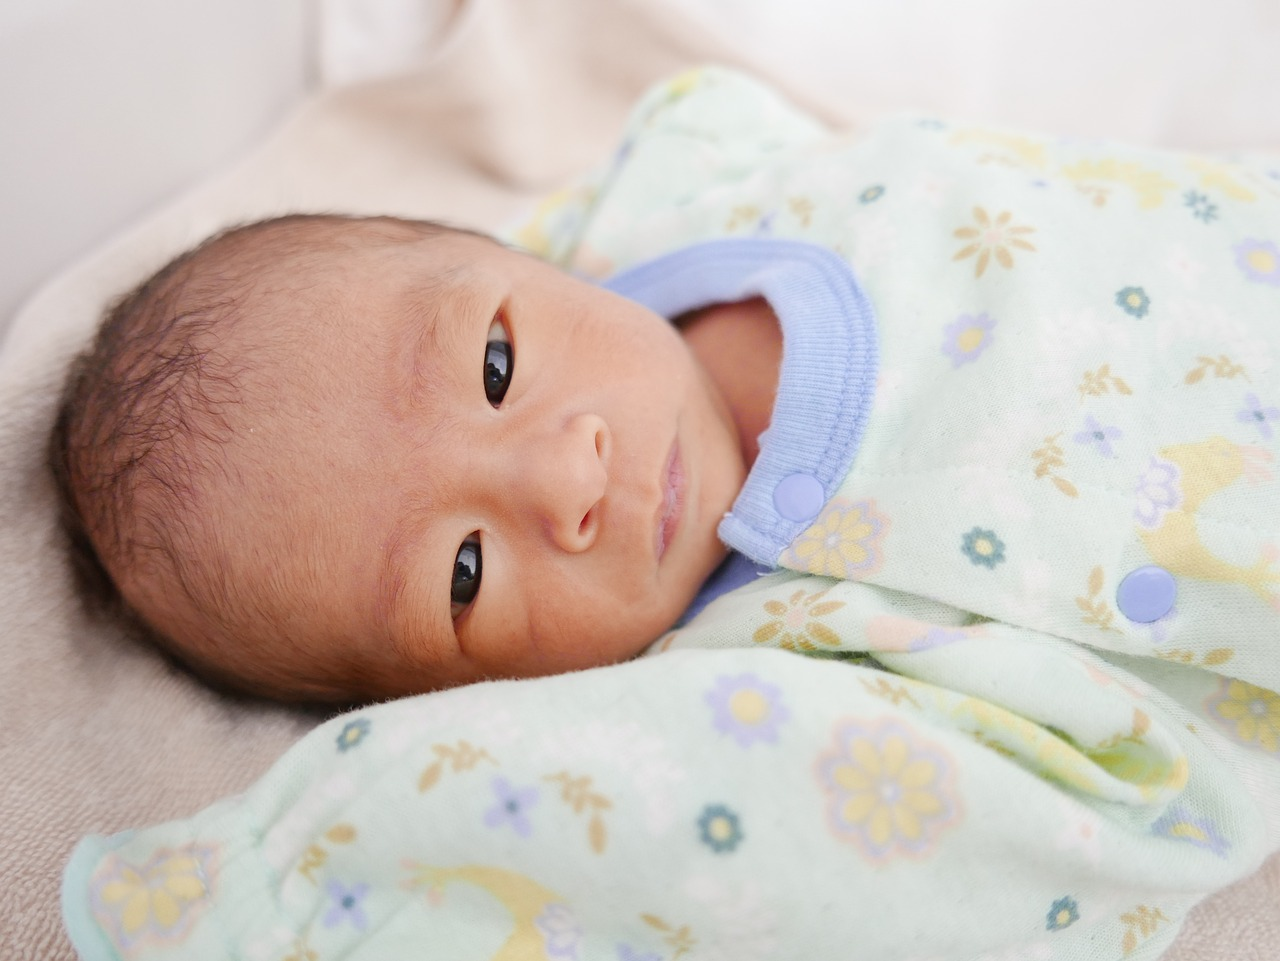 Download Free Photo Of Newborn Baby Free Pictures Free Photos Free Images From Needpix Com